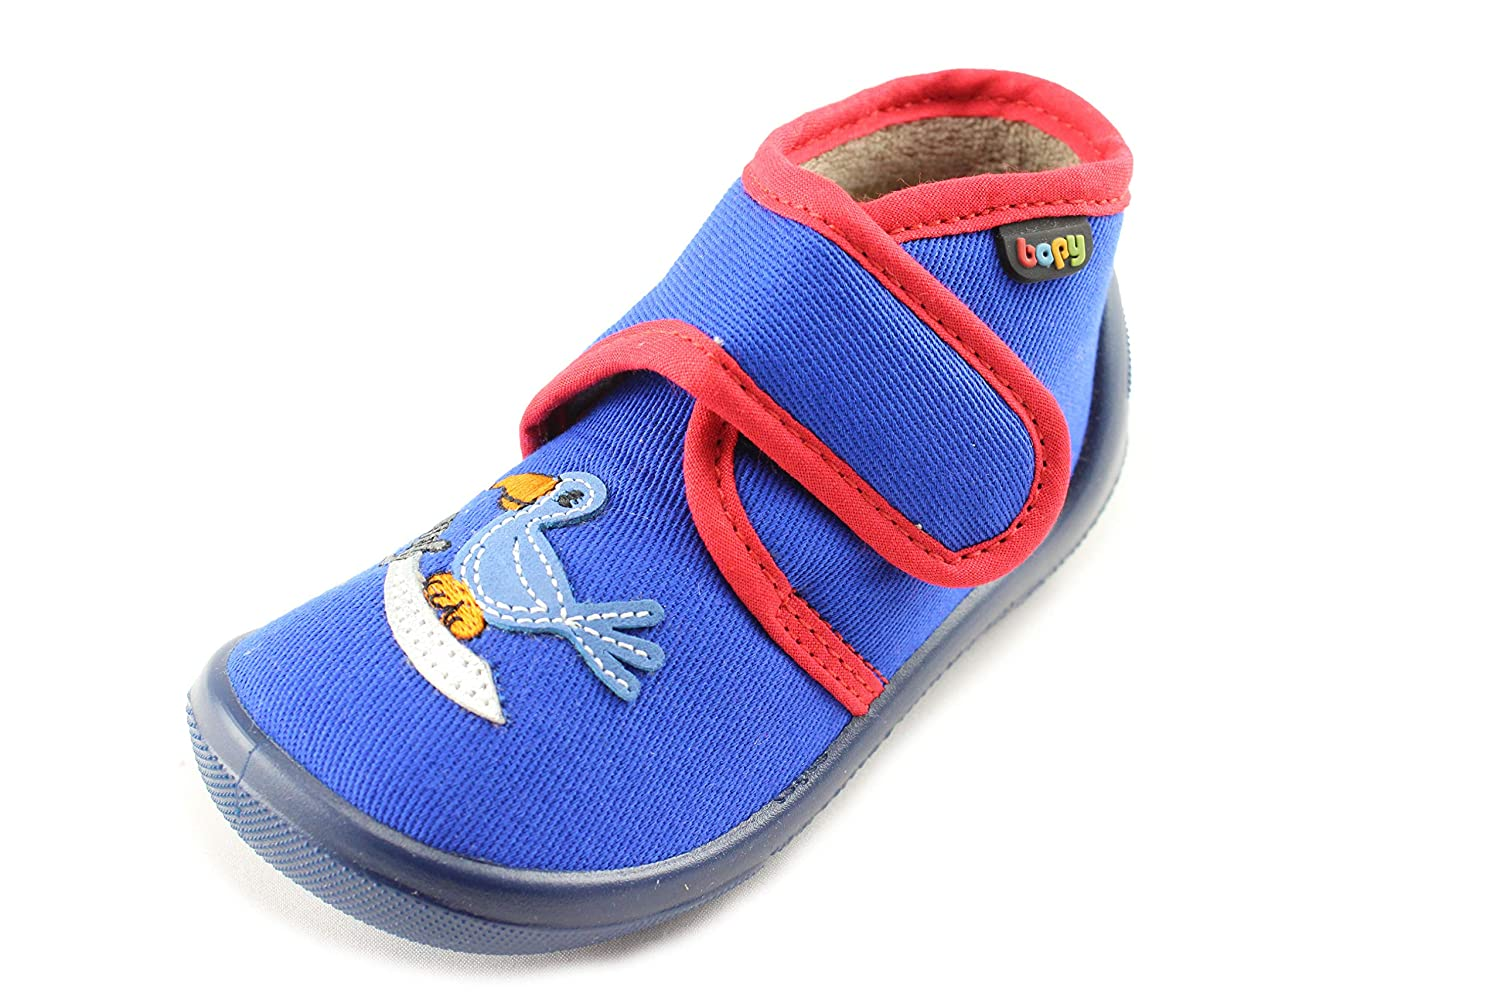 Bopy Ababord Blue Boys Canvas Slippers